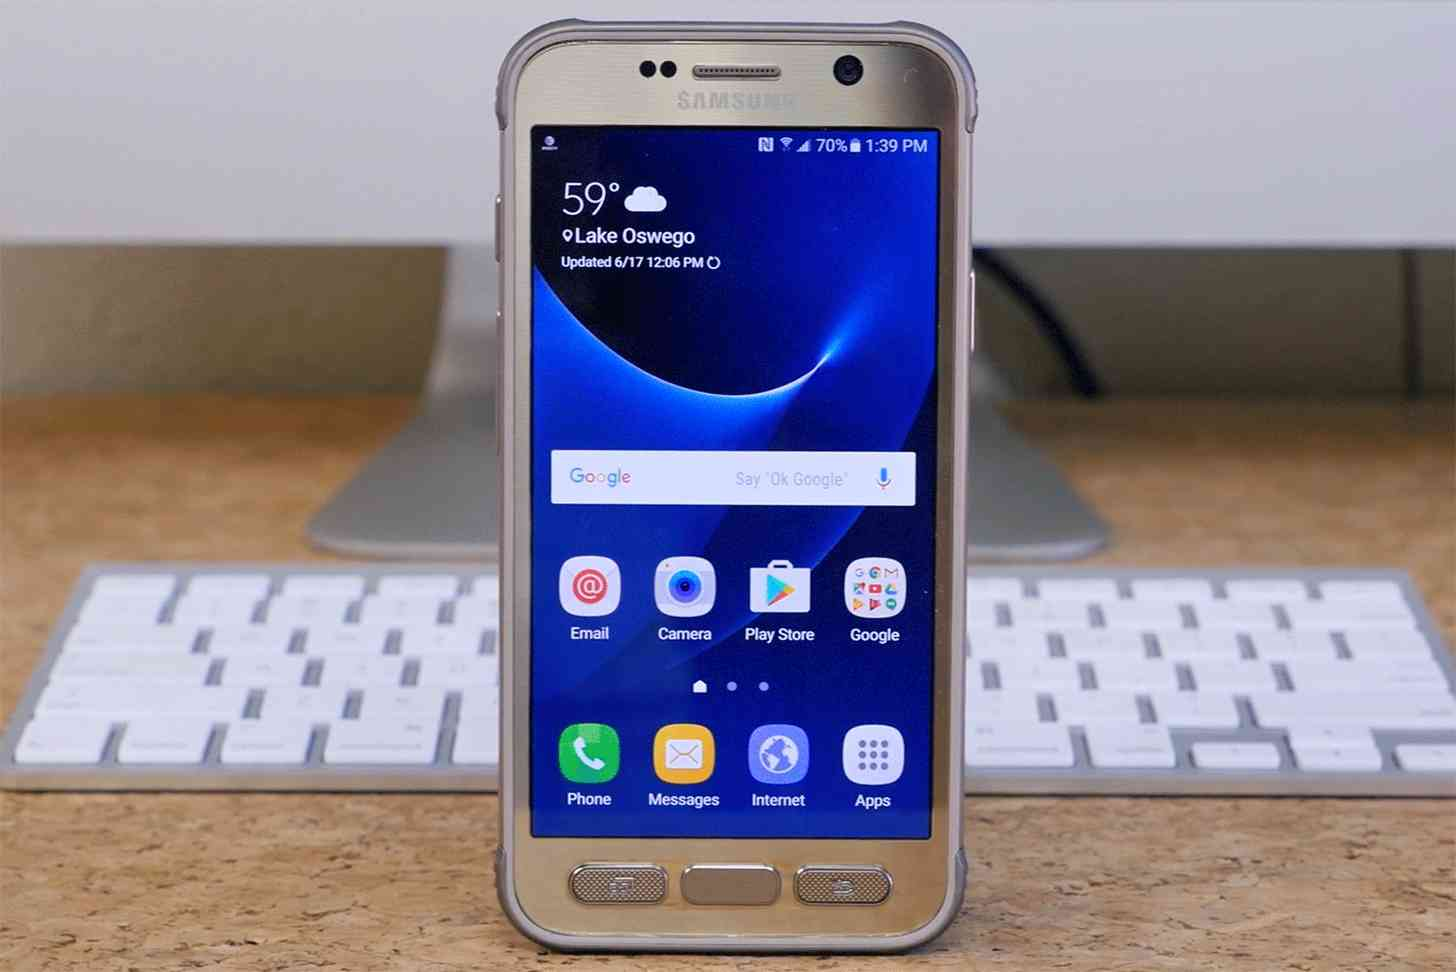 Samsung Galaxy S7 Active hands-on